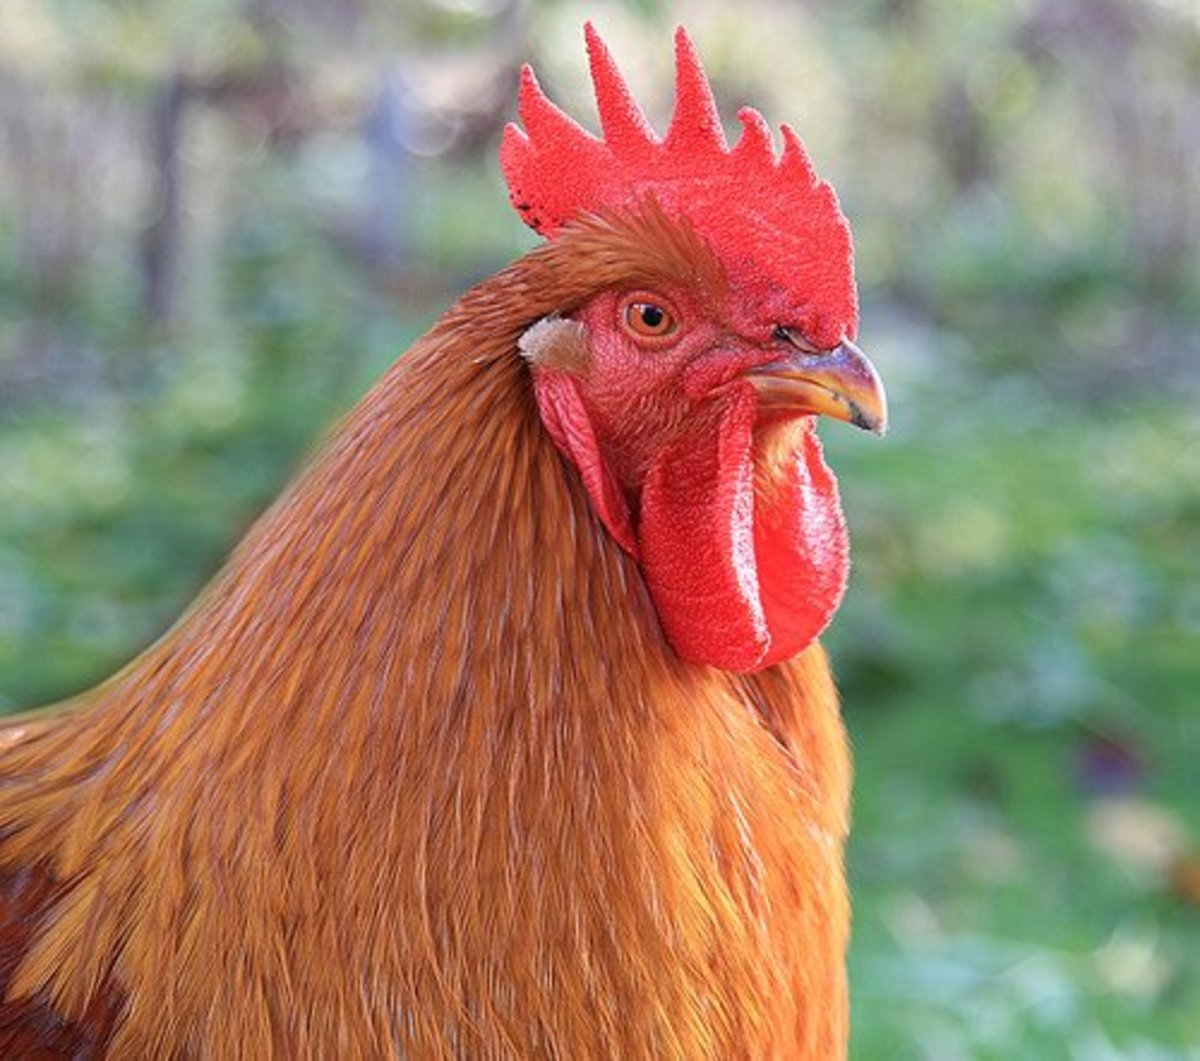 Look Into My Eyes: New Hampshire Hahn rooster with clear eyes.